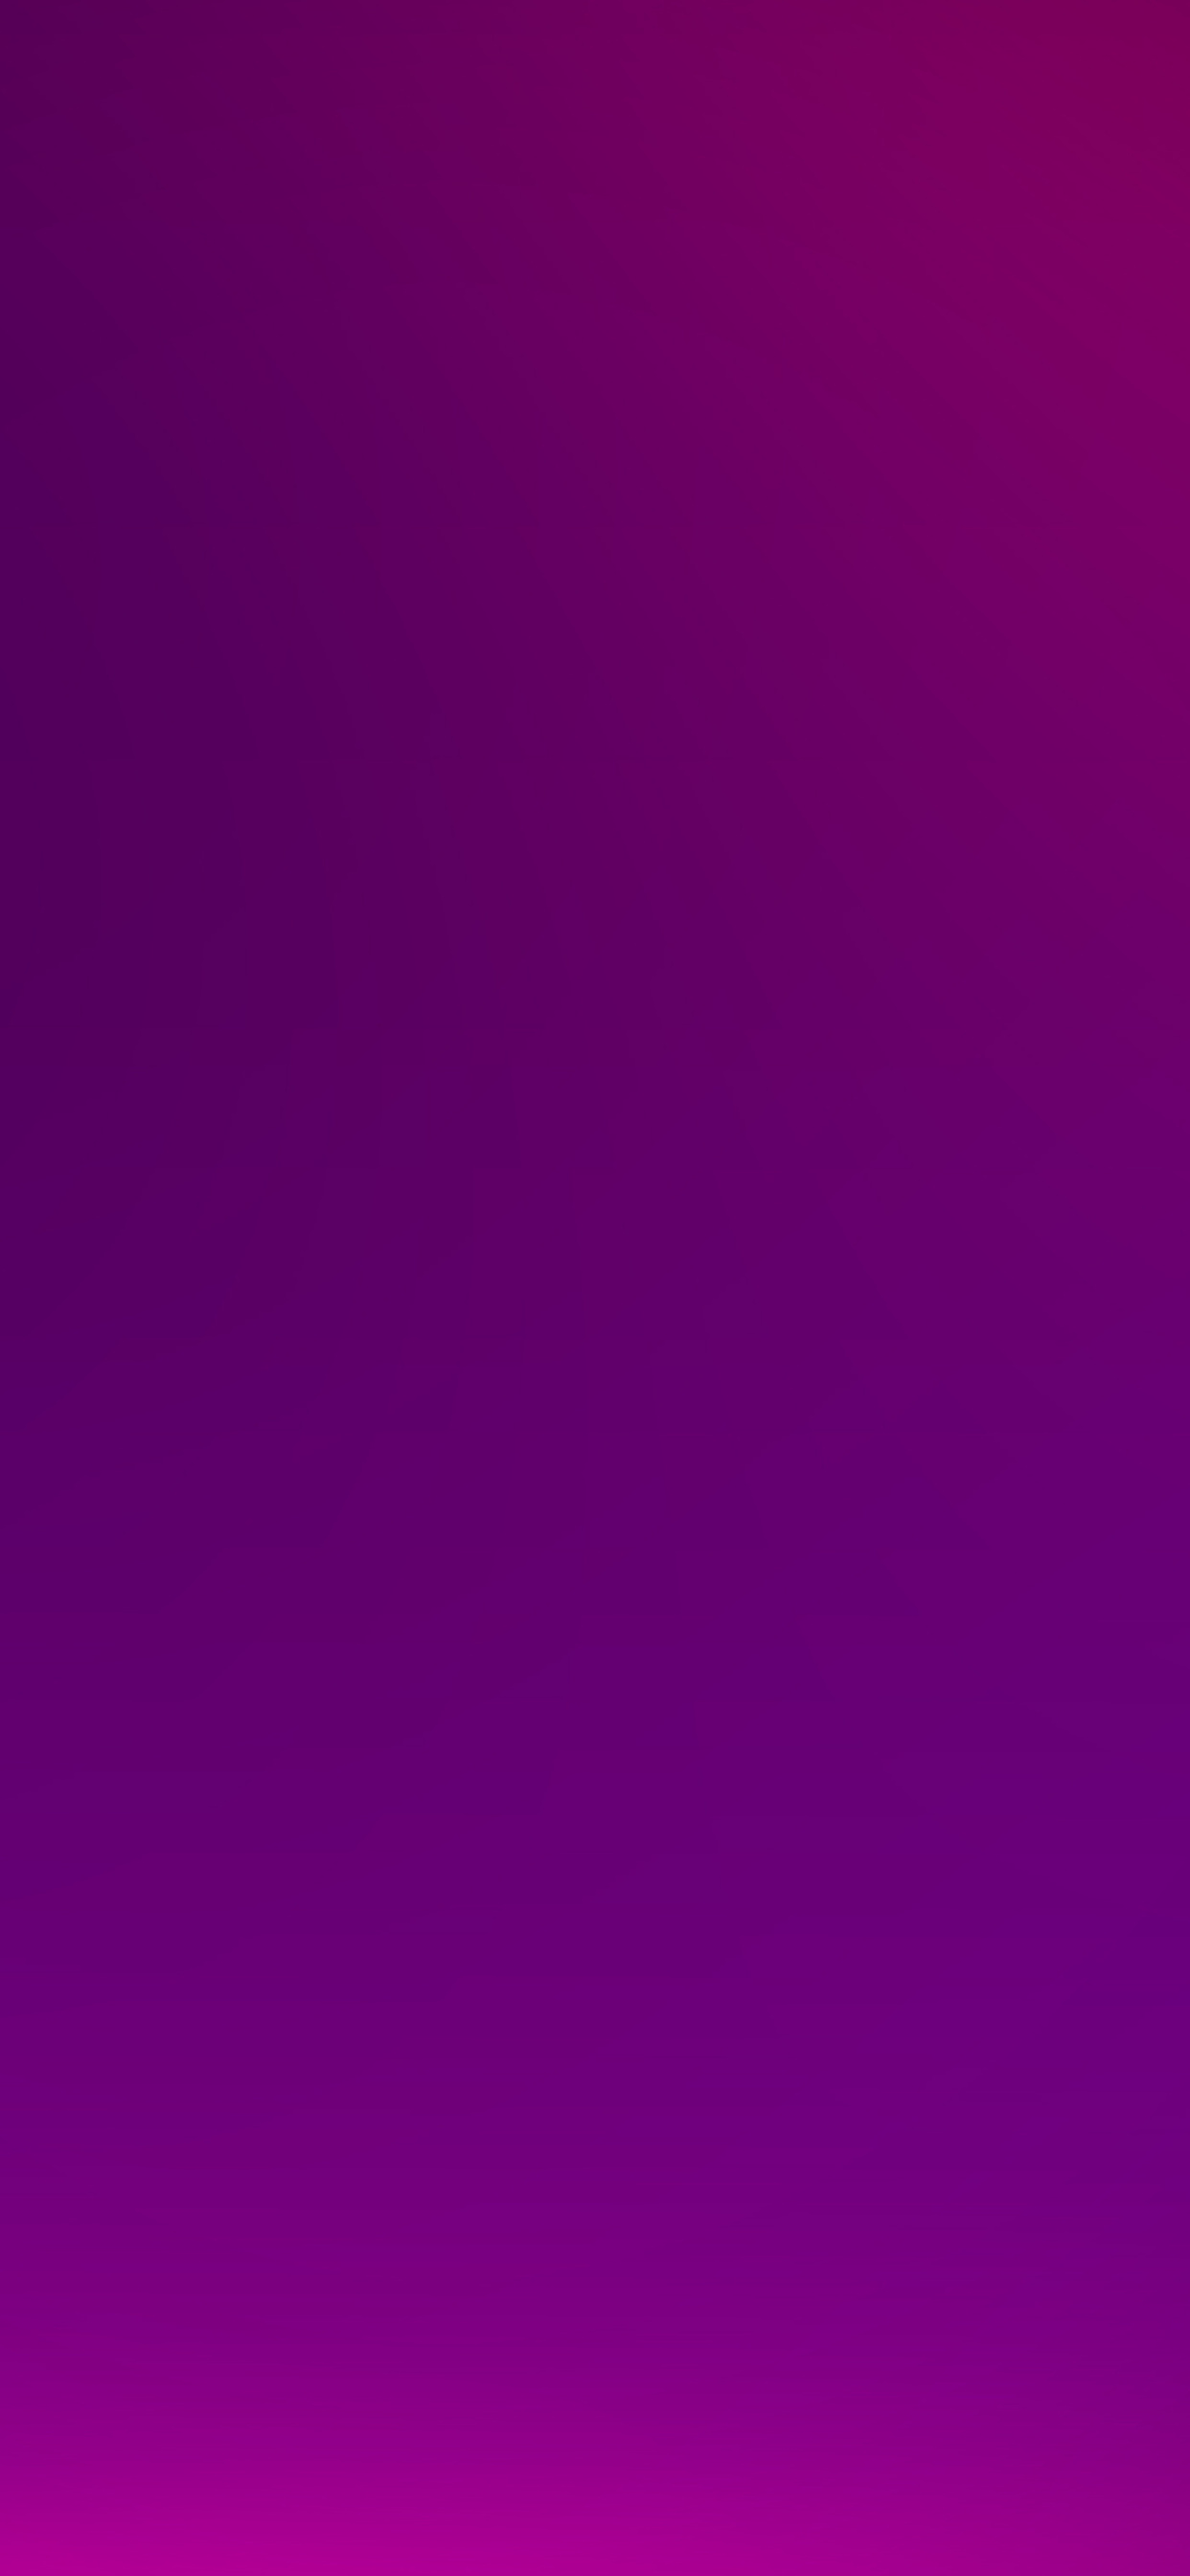 1242x2688 Purple Abstract 4k Iphone Xs Max Hd 4k Wallpapers